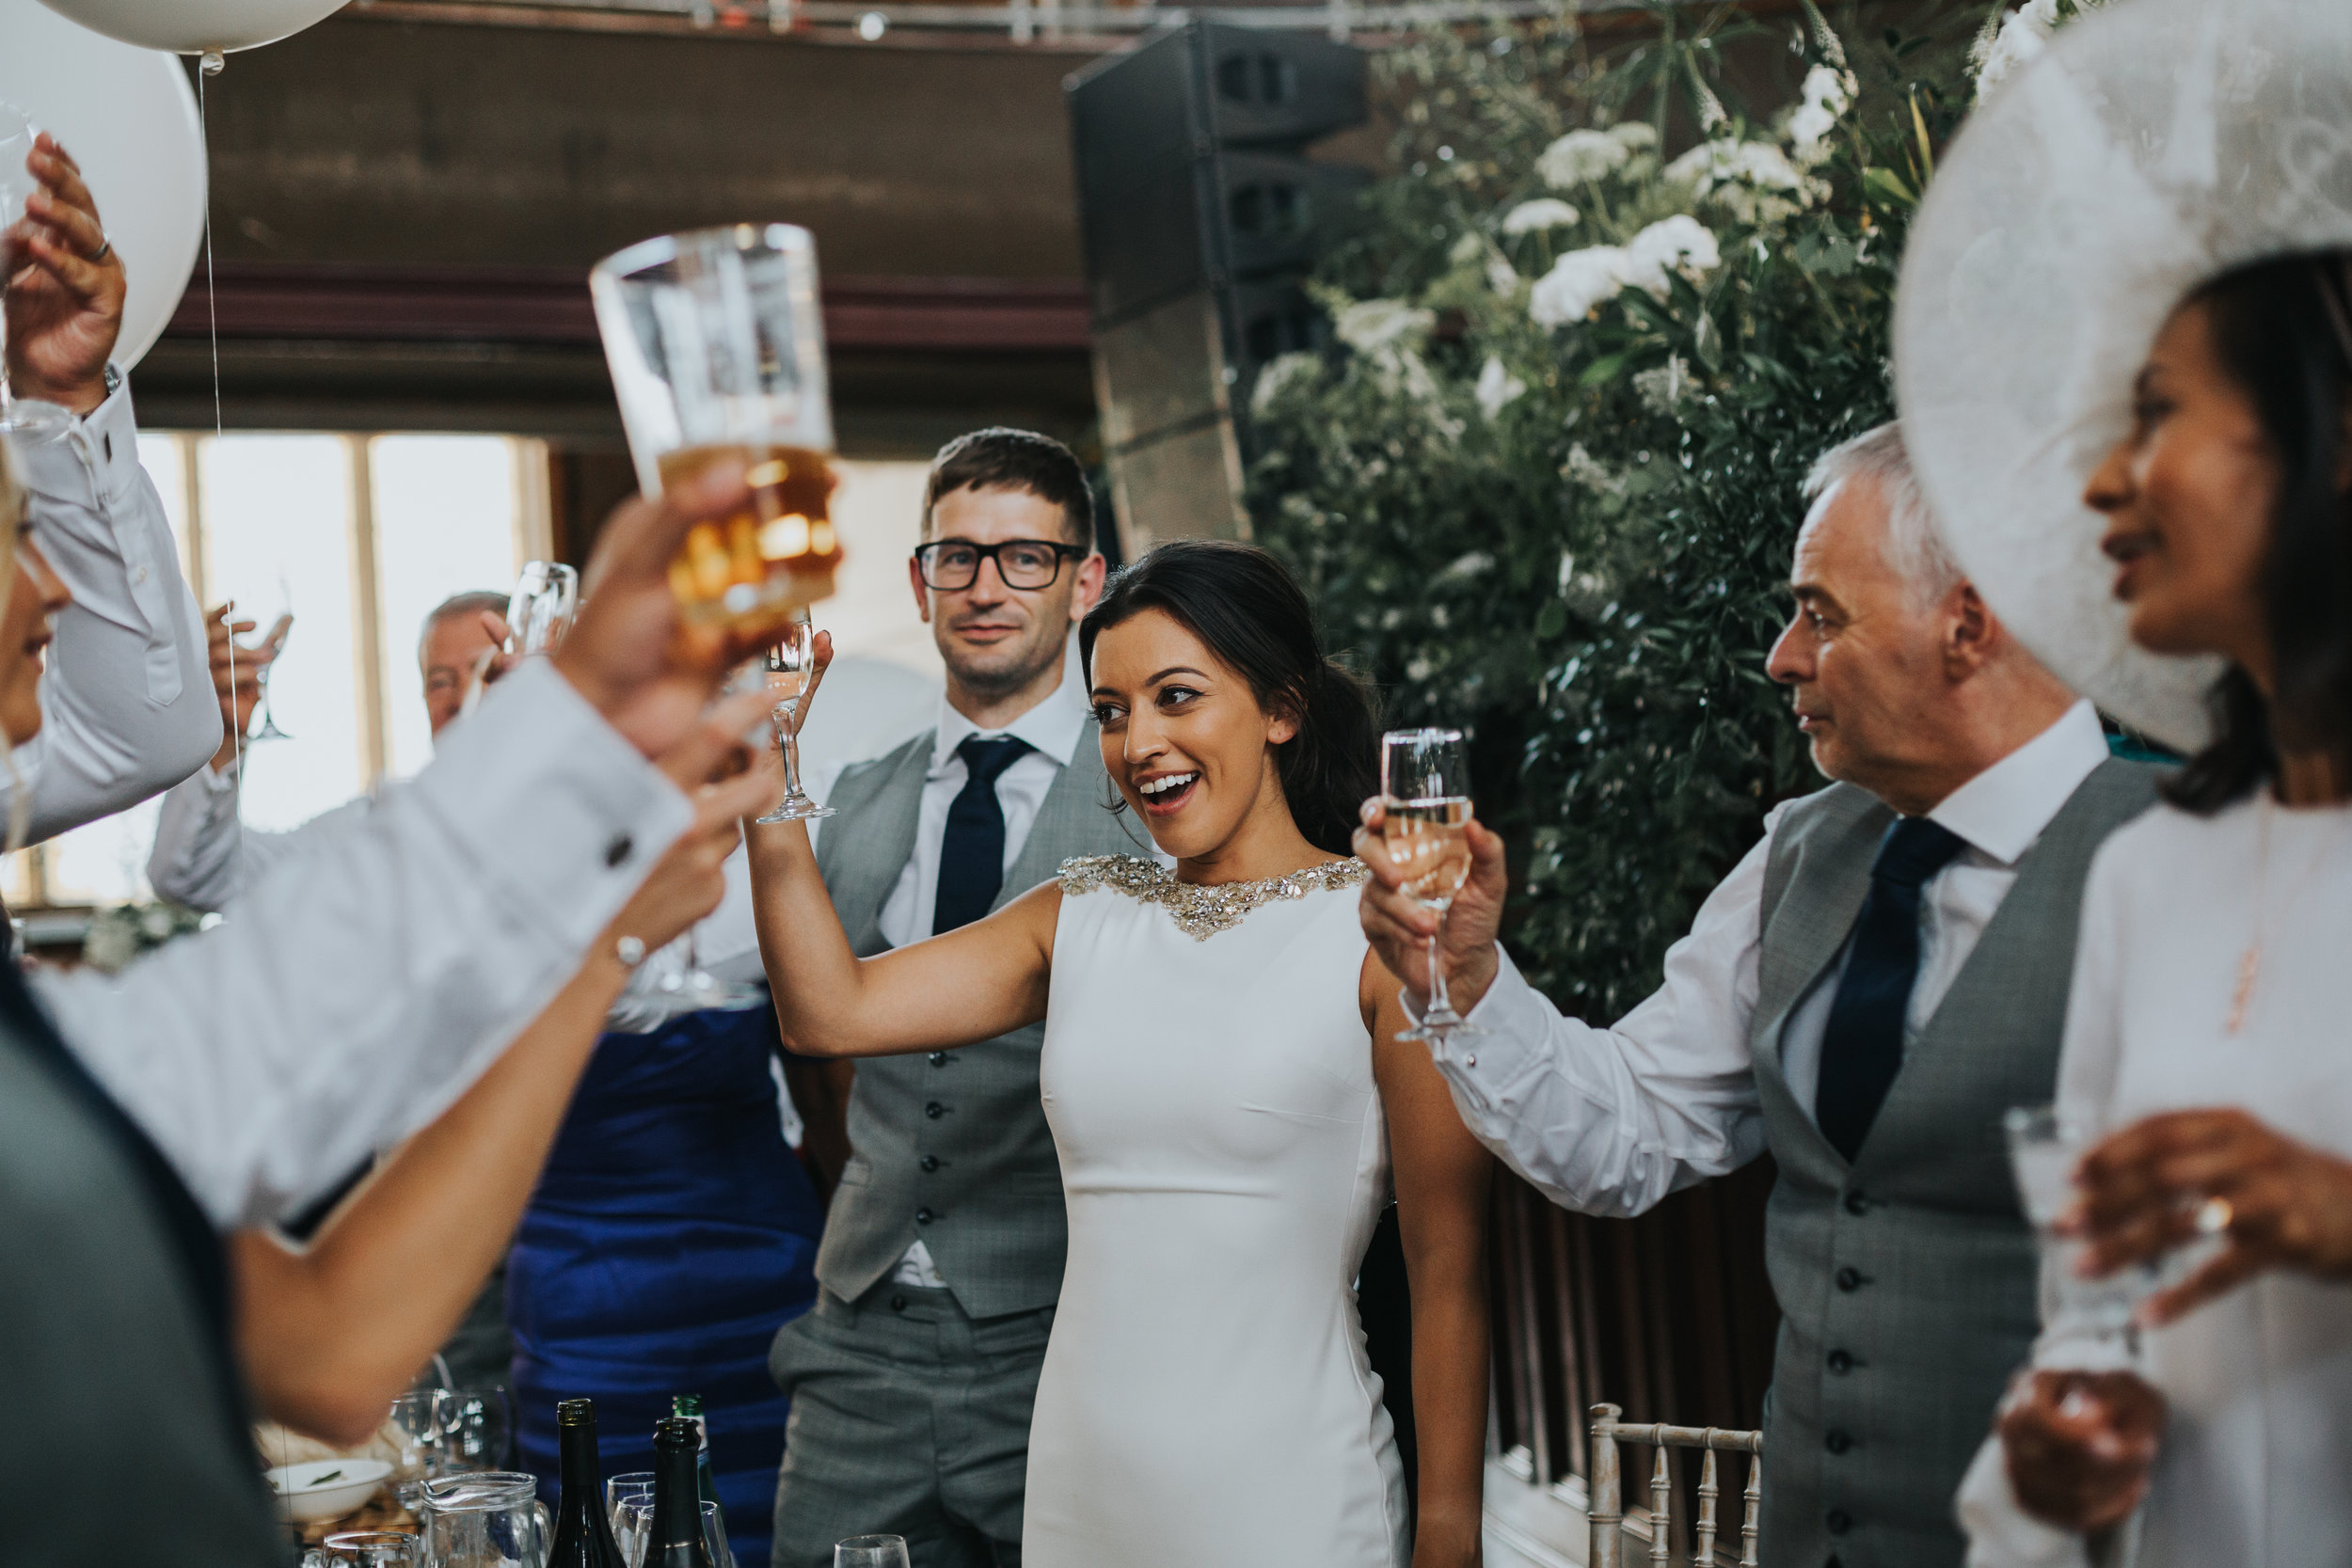 Bride and groom raise their glasses to cheers the best mans speech.